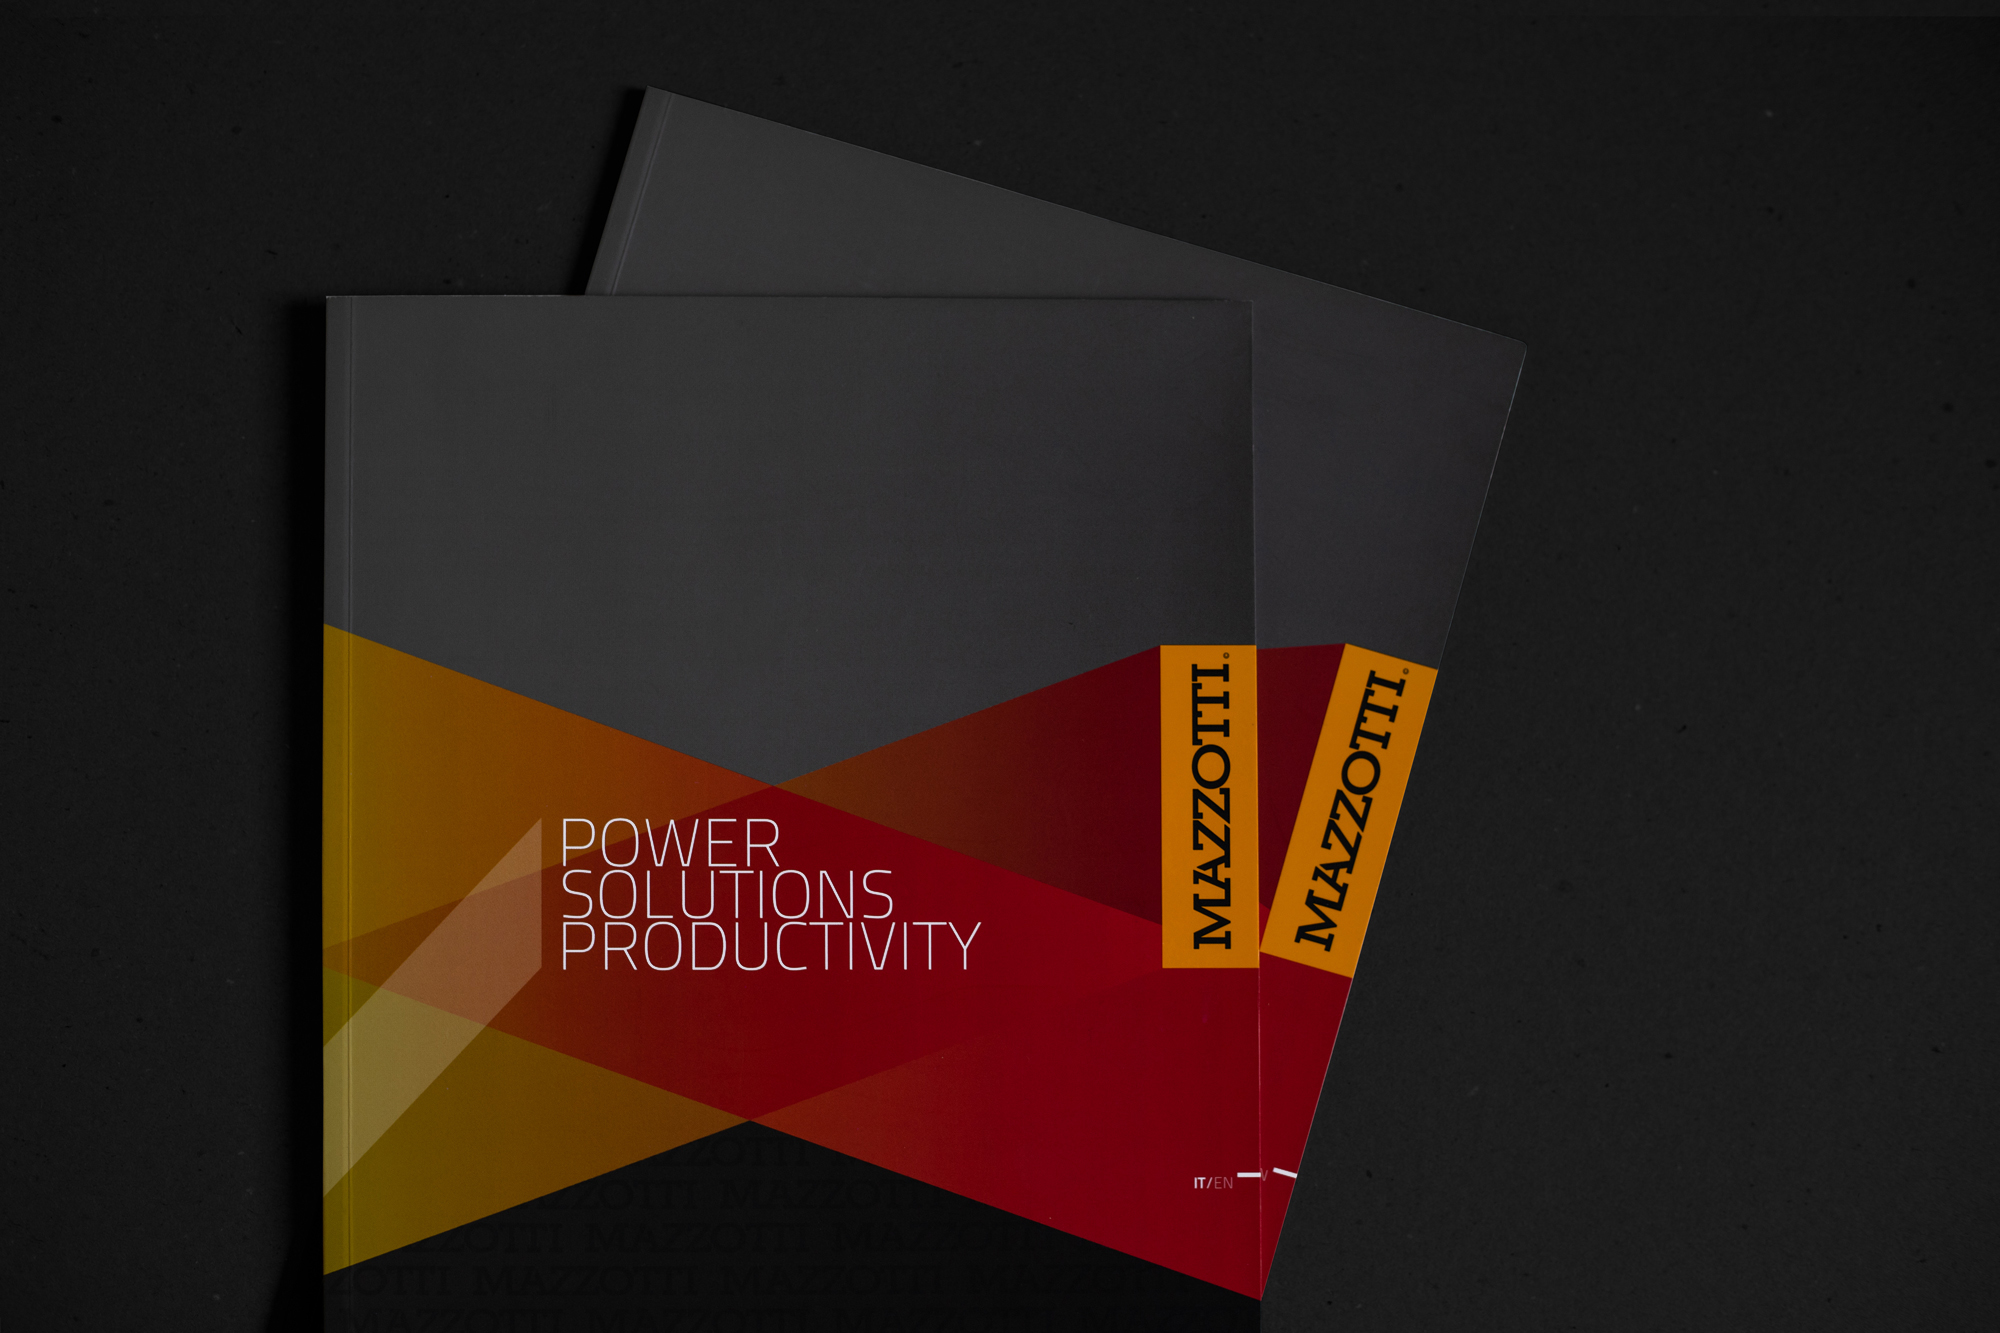 Power Solutions Productivity